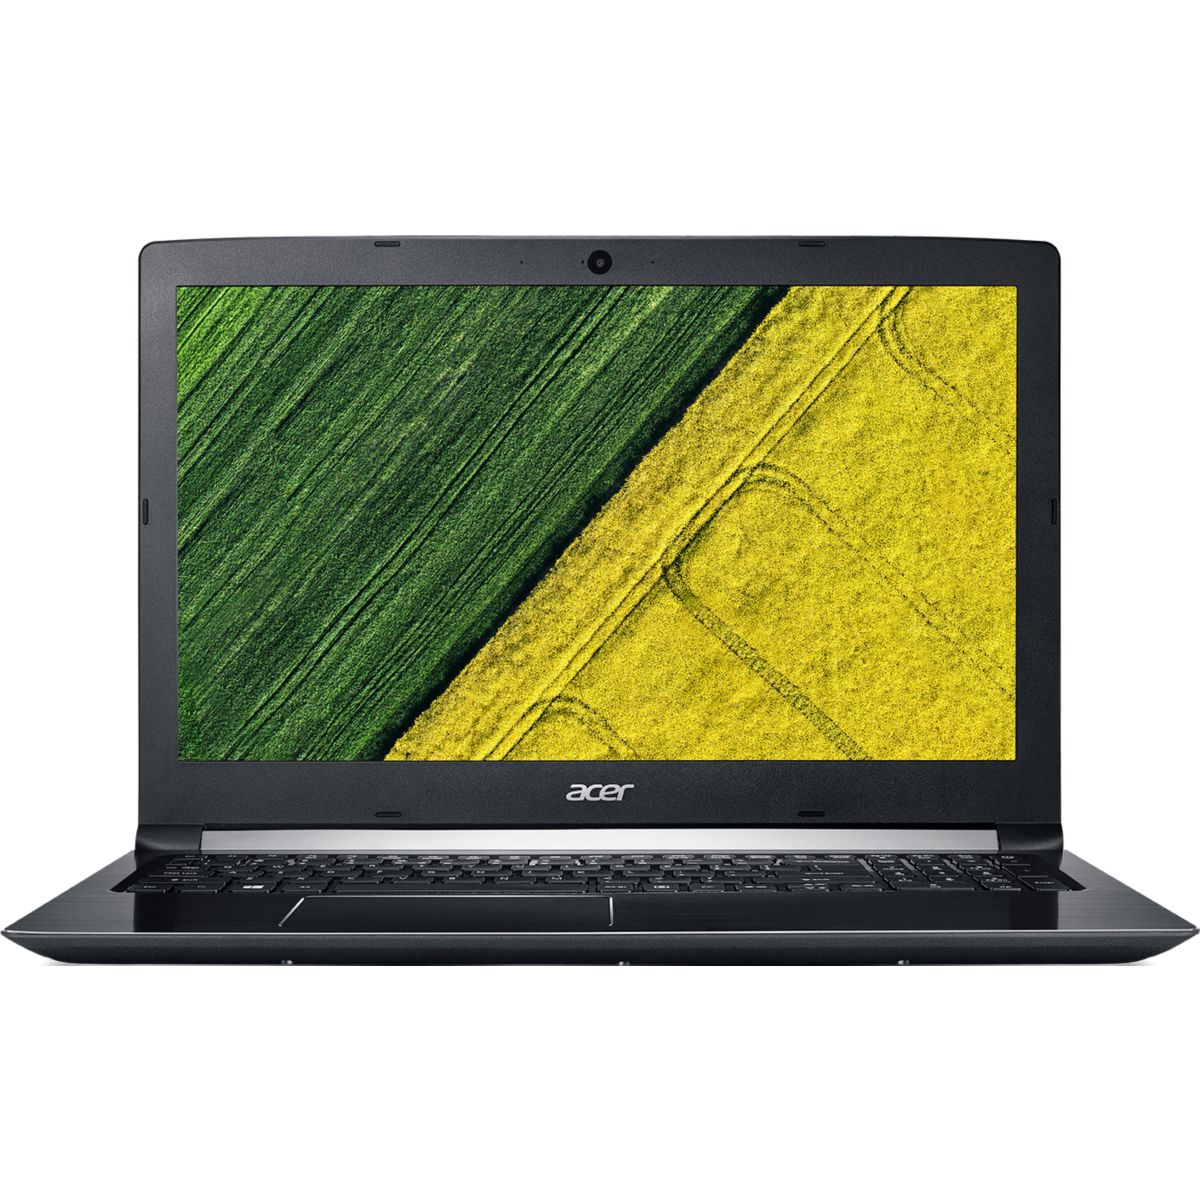 Portable ACER Aspire A515-51G-32LL